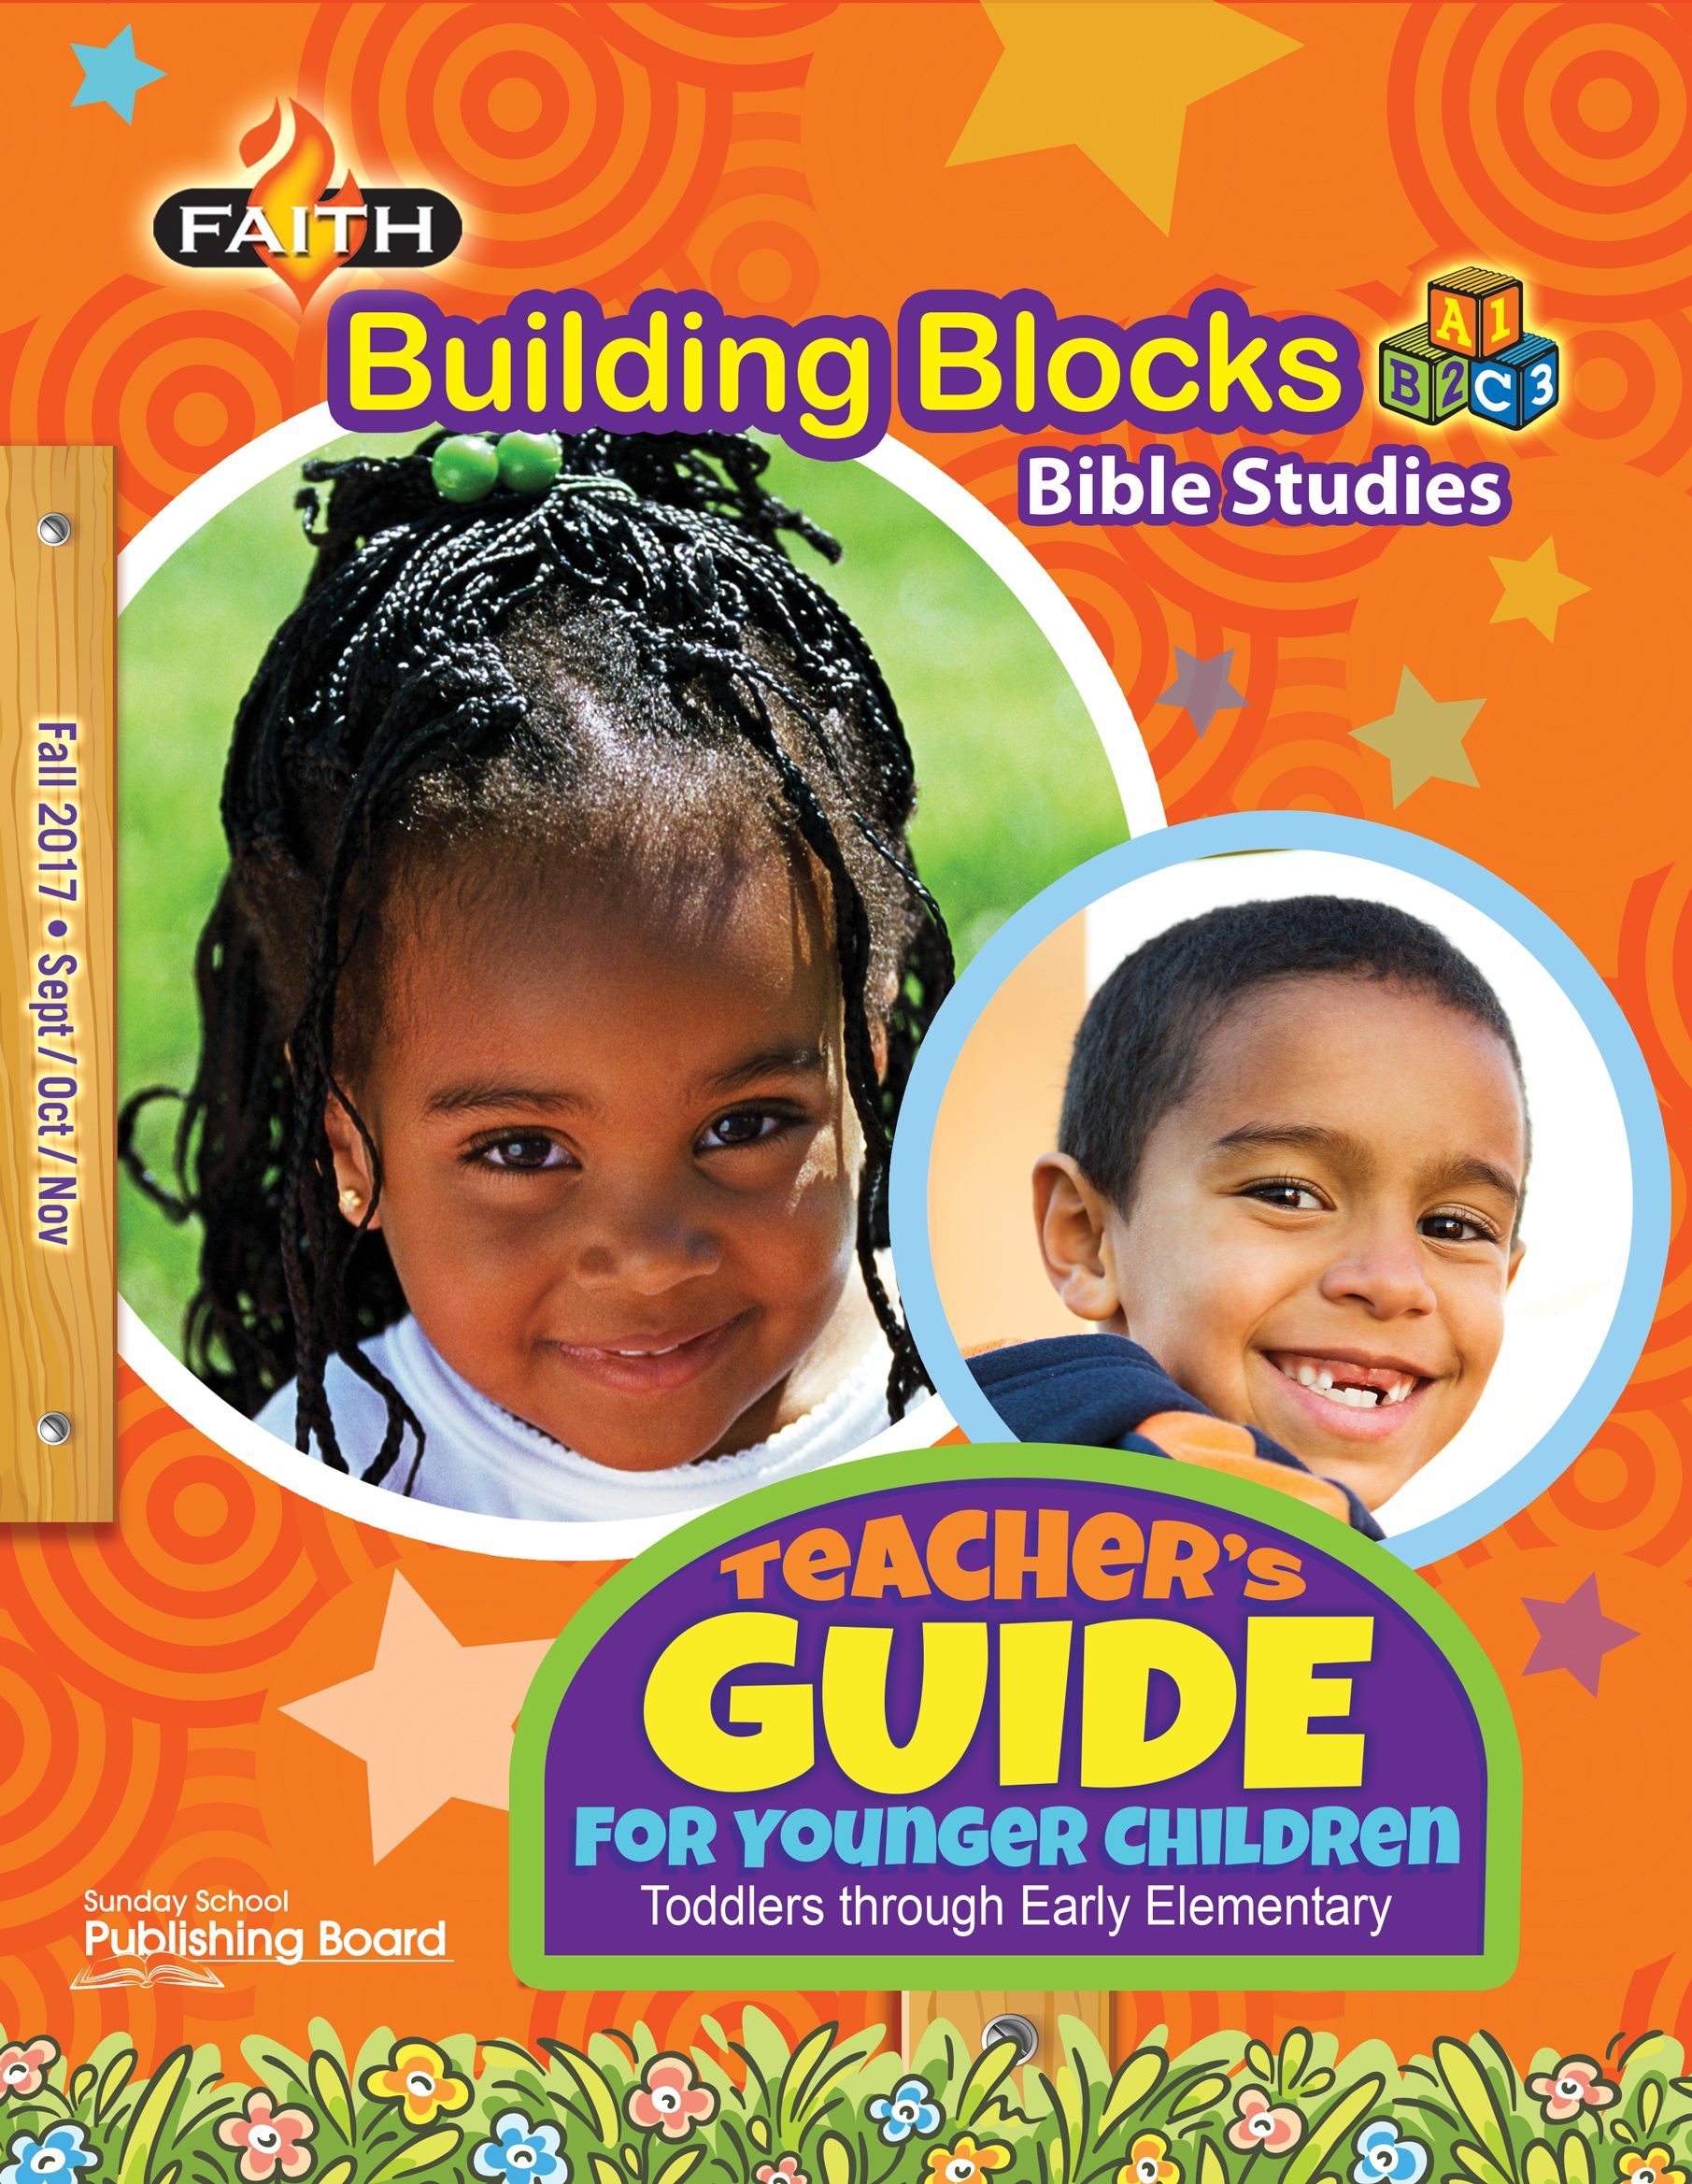 Faith Building Blocks Teacher's Guide for Toddlers to Grade 1 (Fall 2017)-Digital Edition